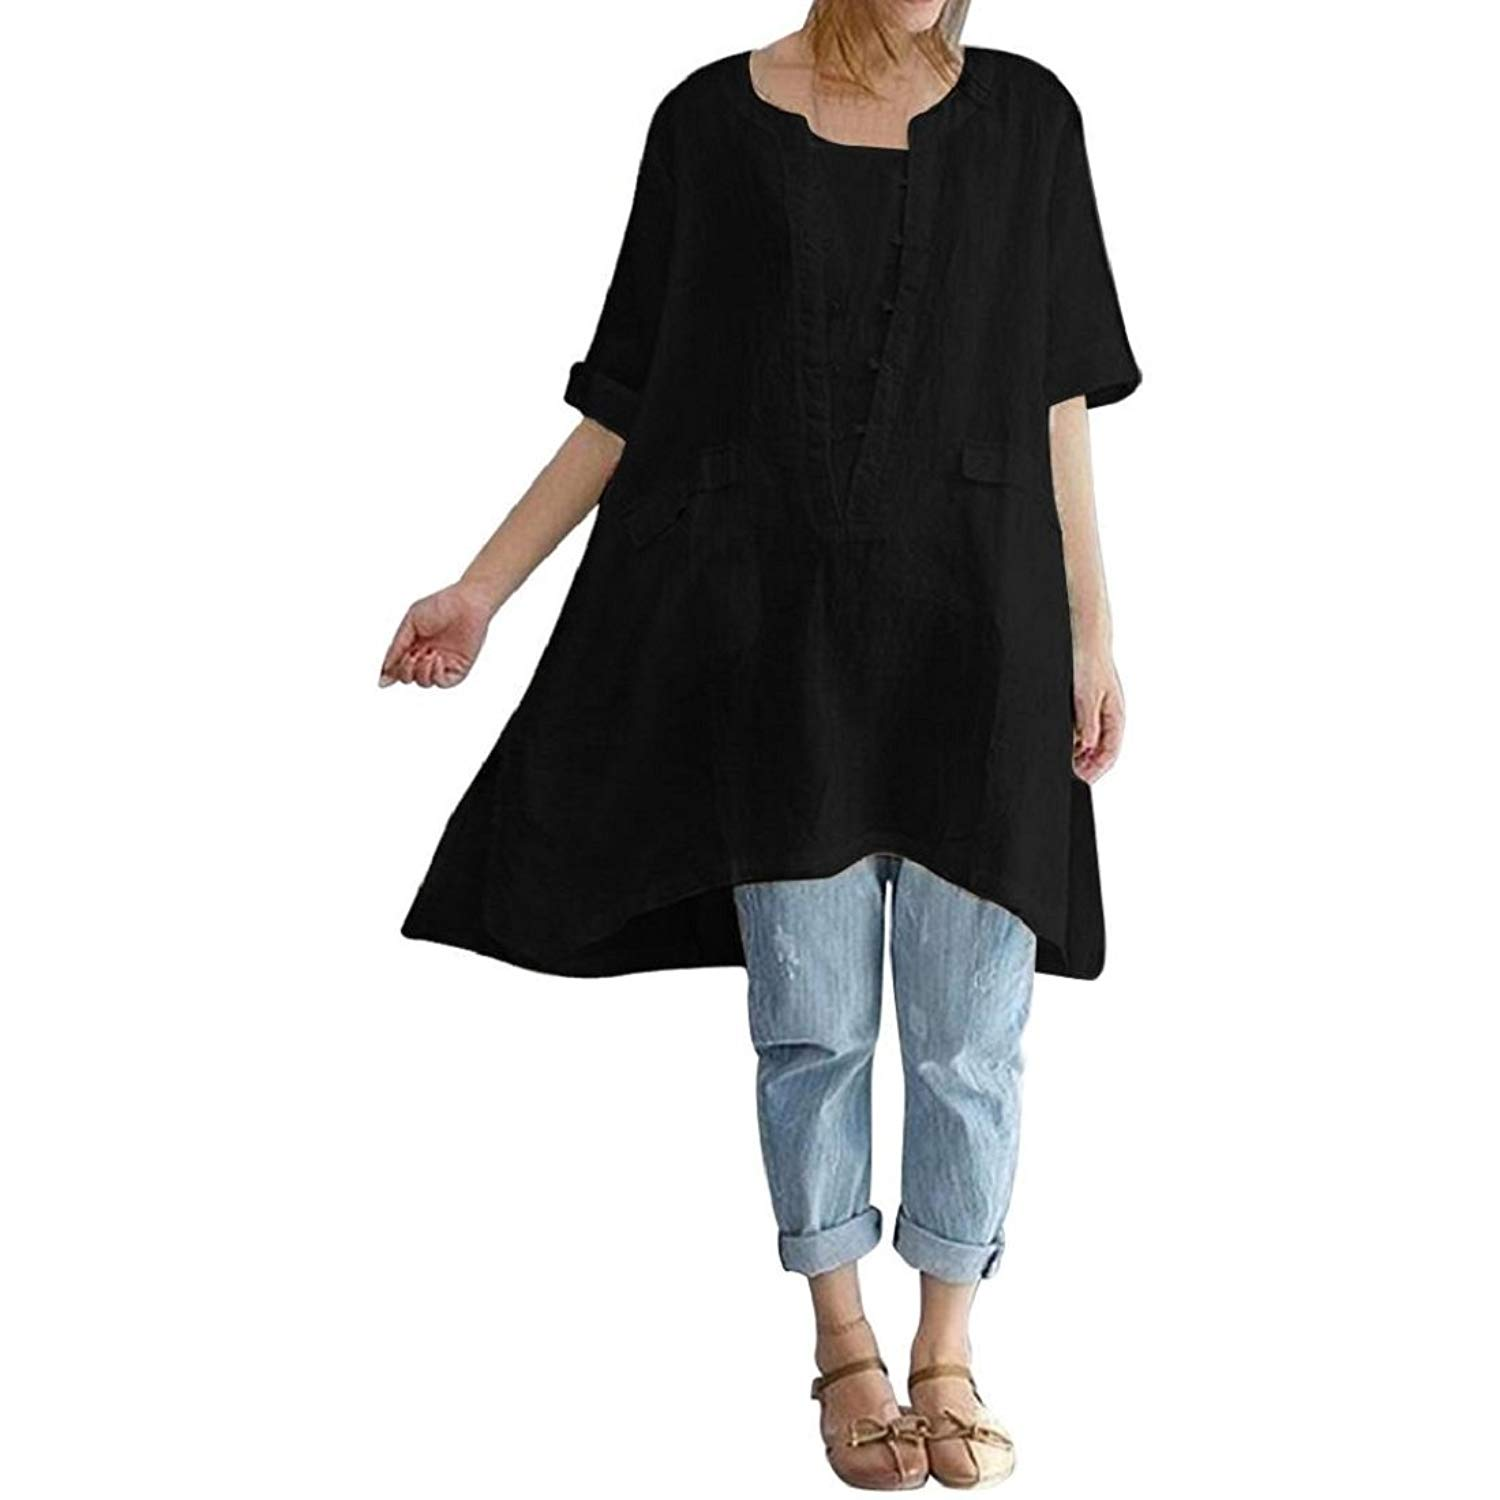 80519488e04 Get Quotations · GONKOMA Women's Plus Size Tops Irregular Casual Loose  Blouse Linen Short Sleeved T-Shirts Vintage